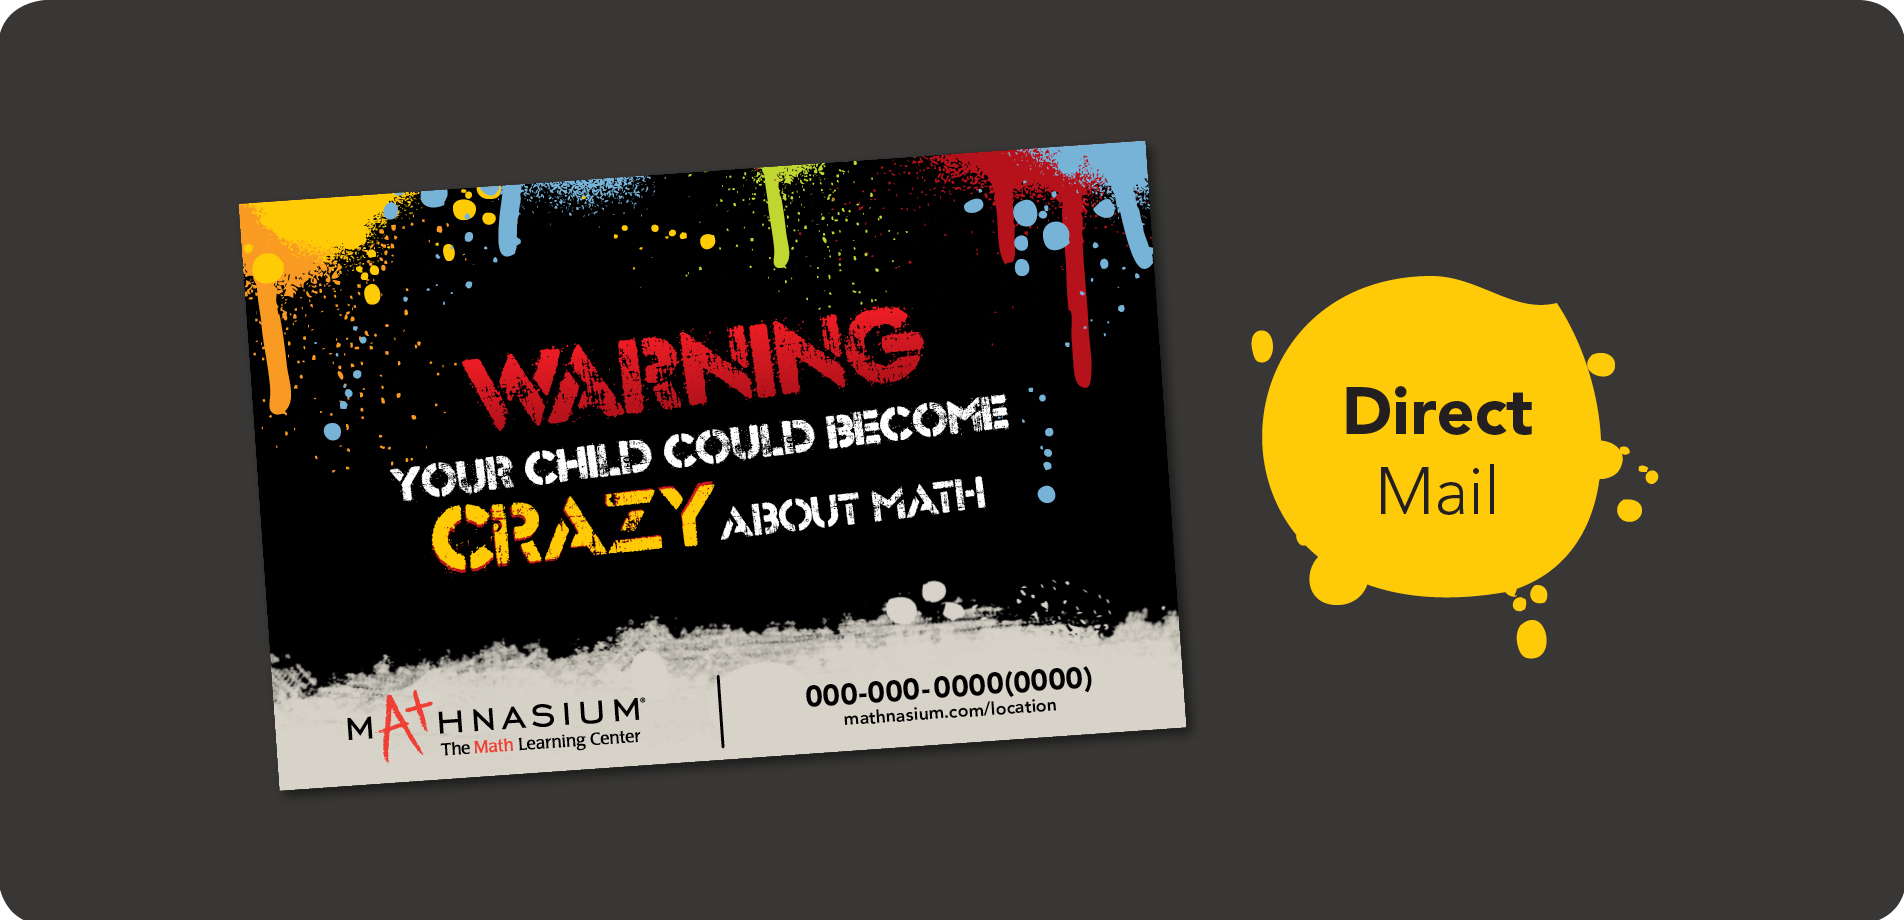 Examples-Direct-Mail-Warning-2016